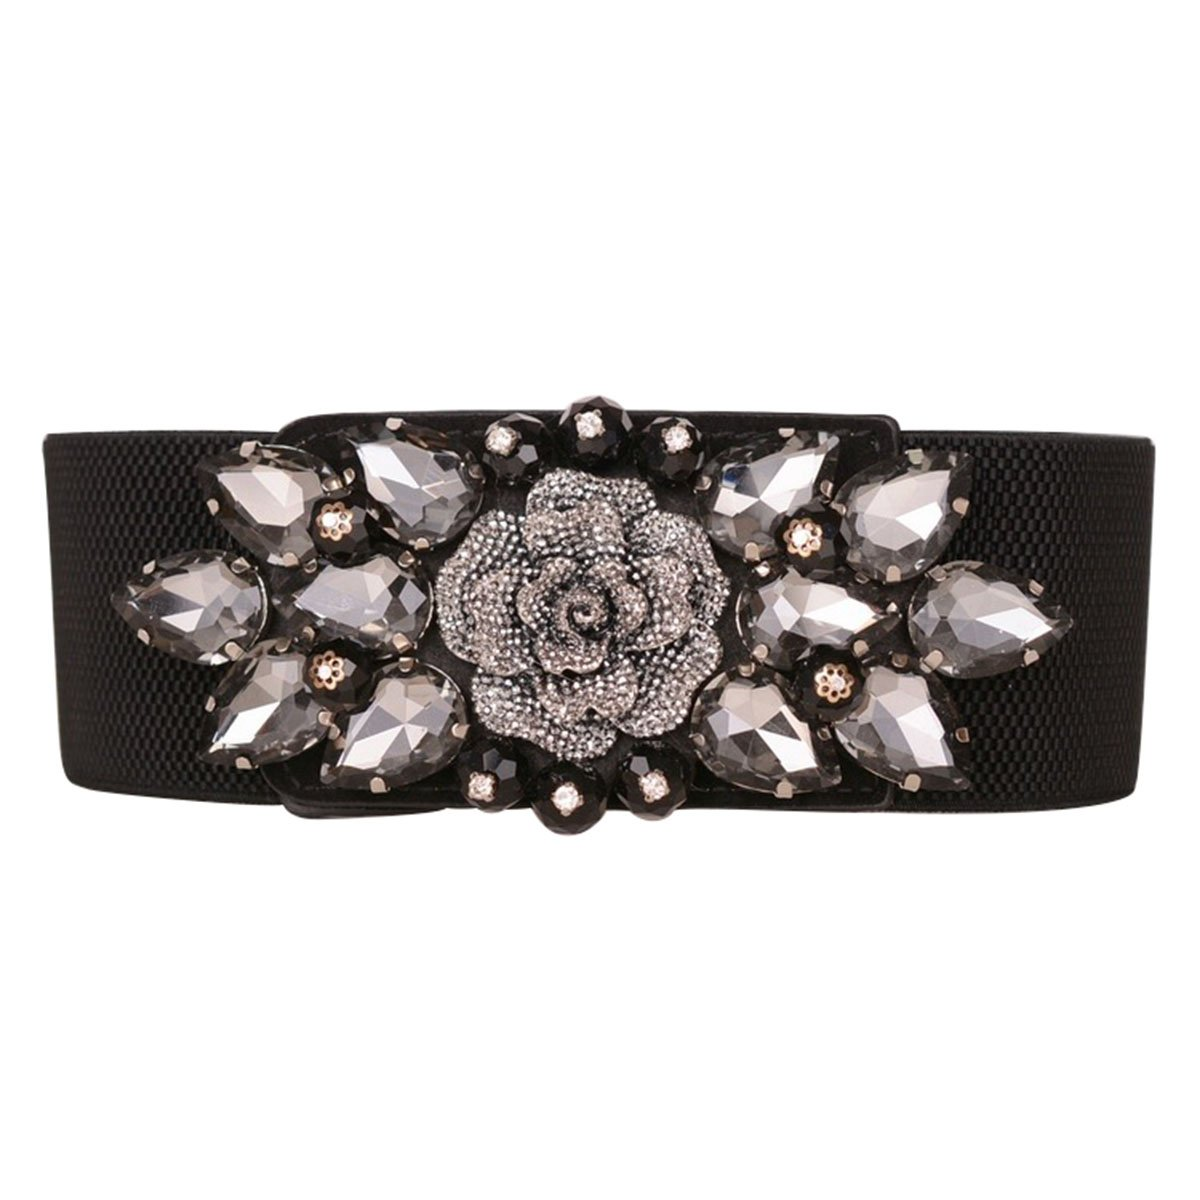 E-Clover Cute Wide Floral Rhinestone Stretch Elastic Cinch Waist Belt For Ladies (Black) by E-Clover